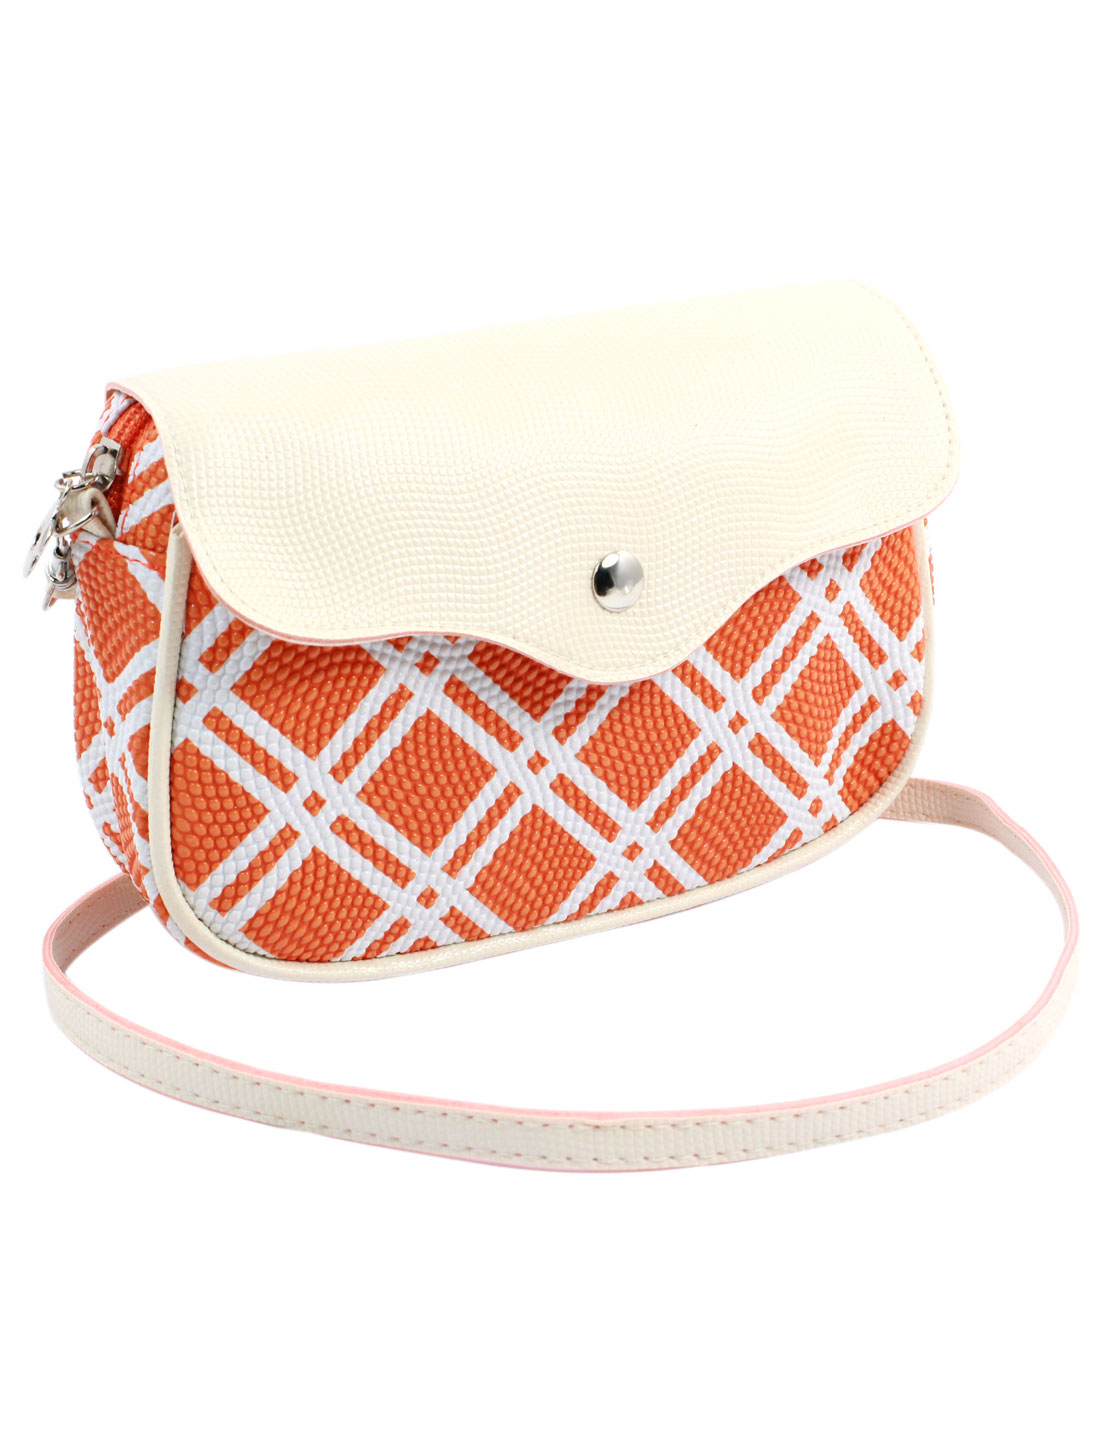 Women 2 Pockets Magnet Button Zipper Closure Check Pattern Faux Leather Wallet Purse Bag Orange White w Shoulder Strap